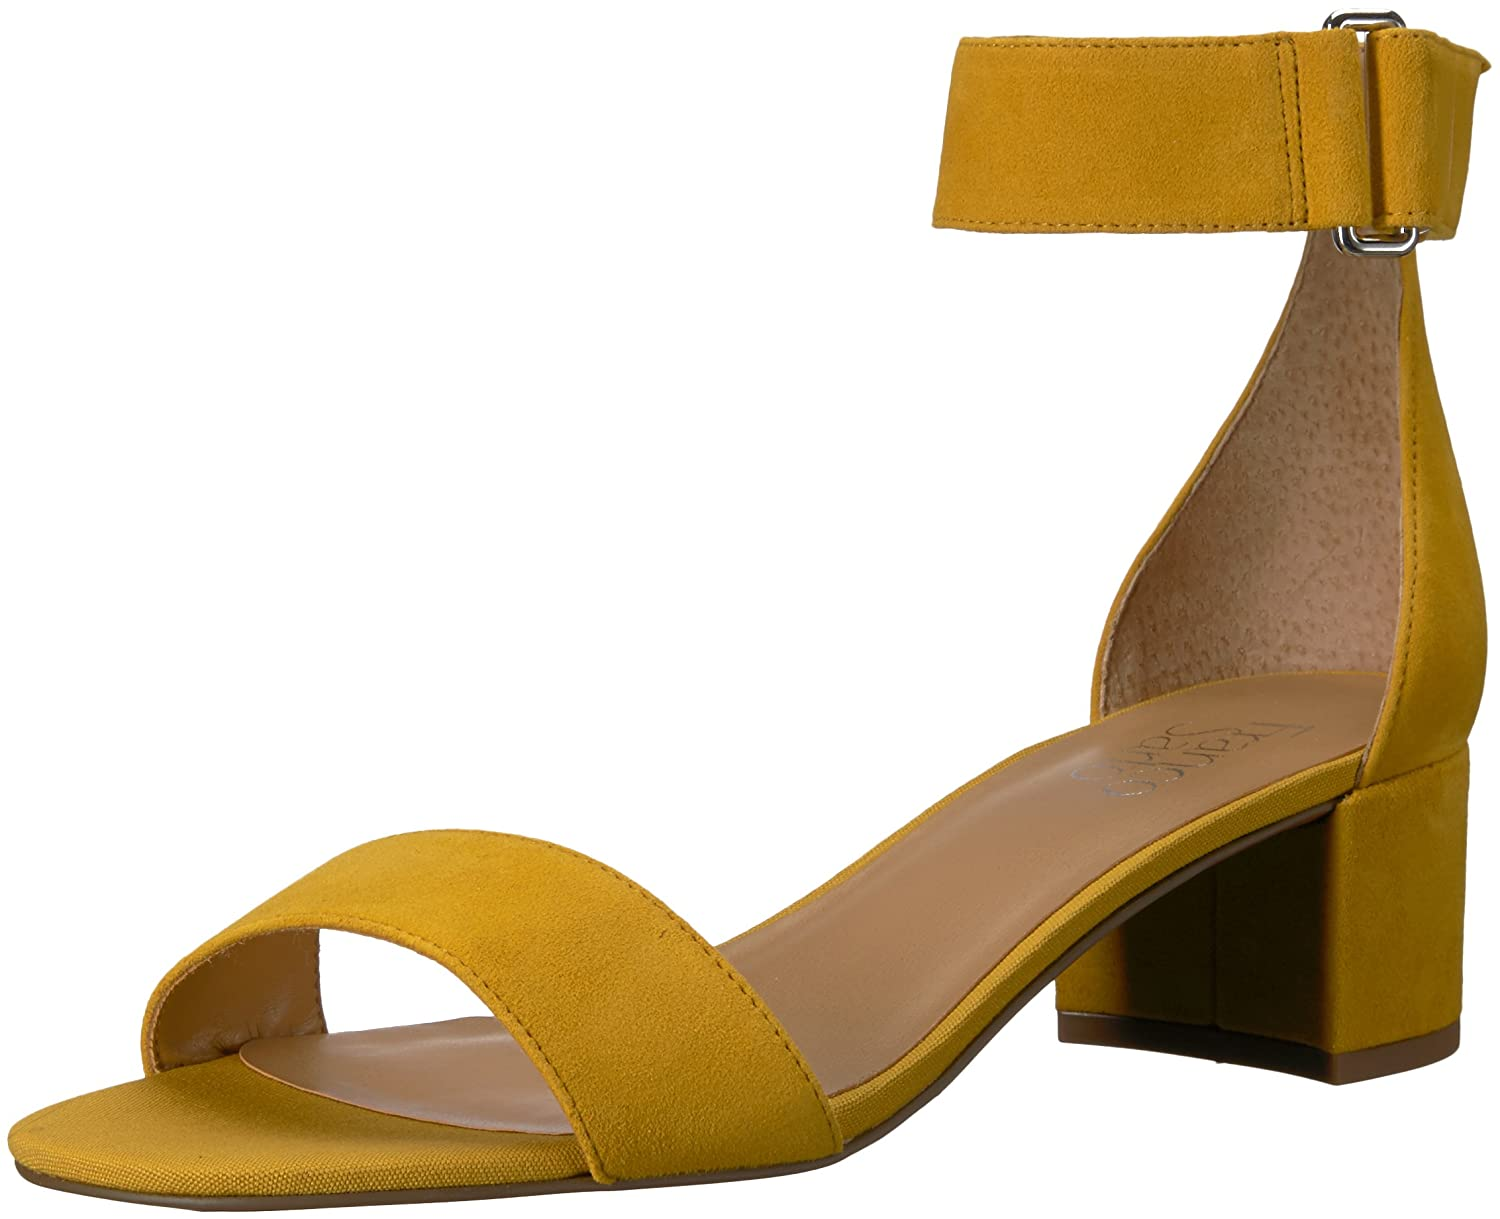 [Franco Sarto] レディース ROSALINA B0772KJ71W 10 W US|Summer Yellow Summer Yellow 10 W US